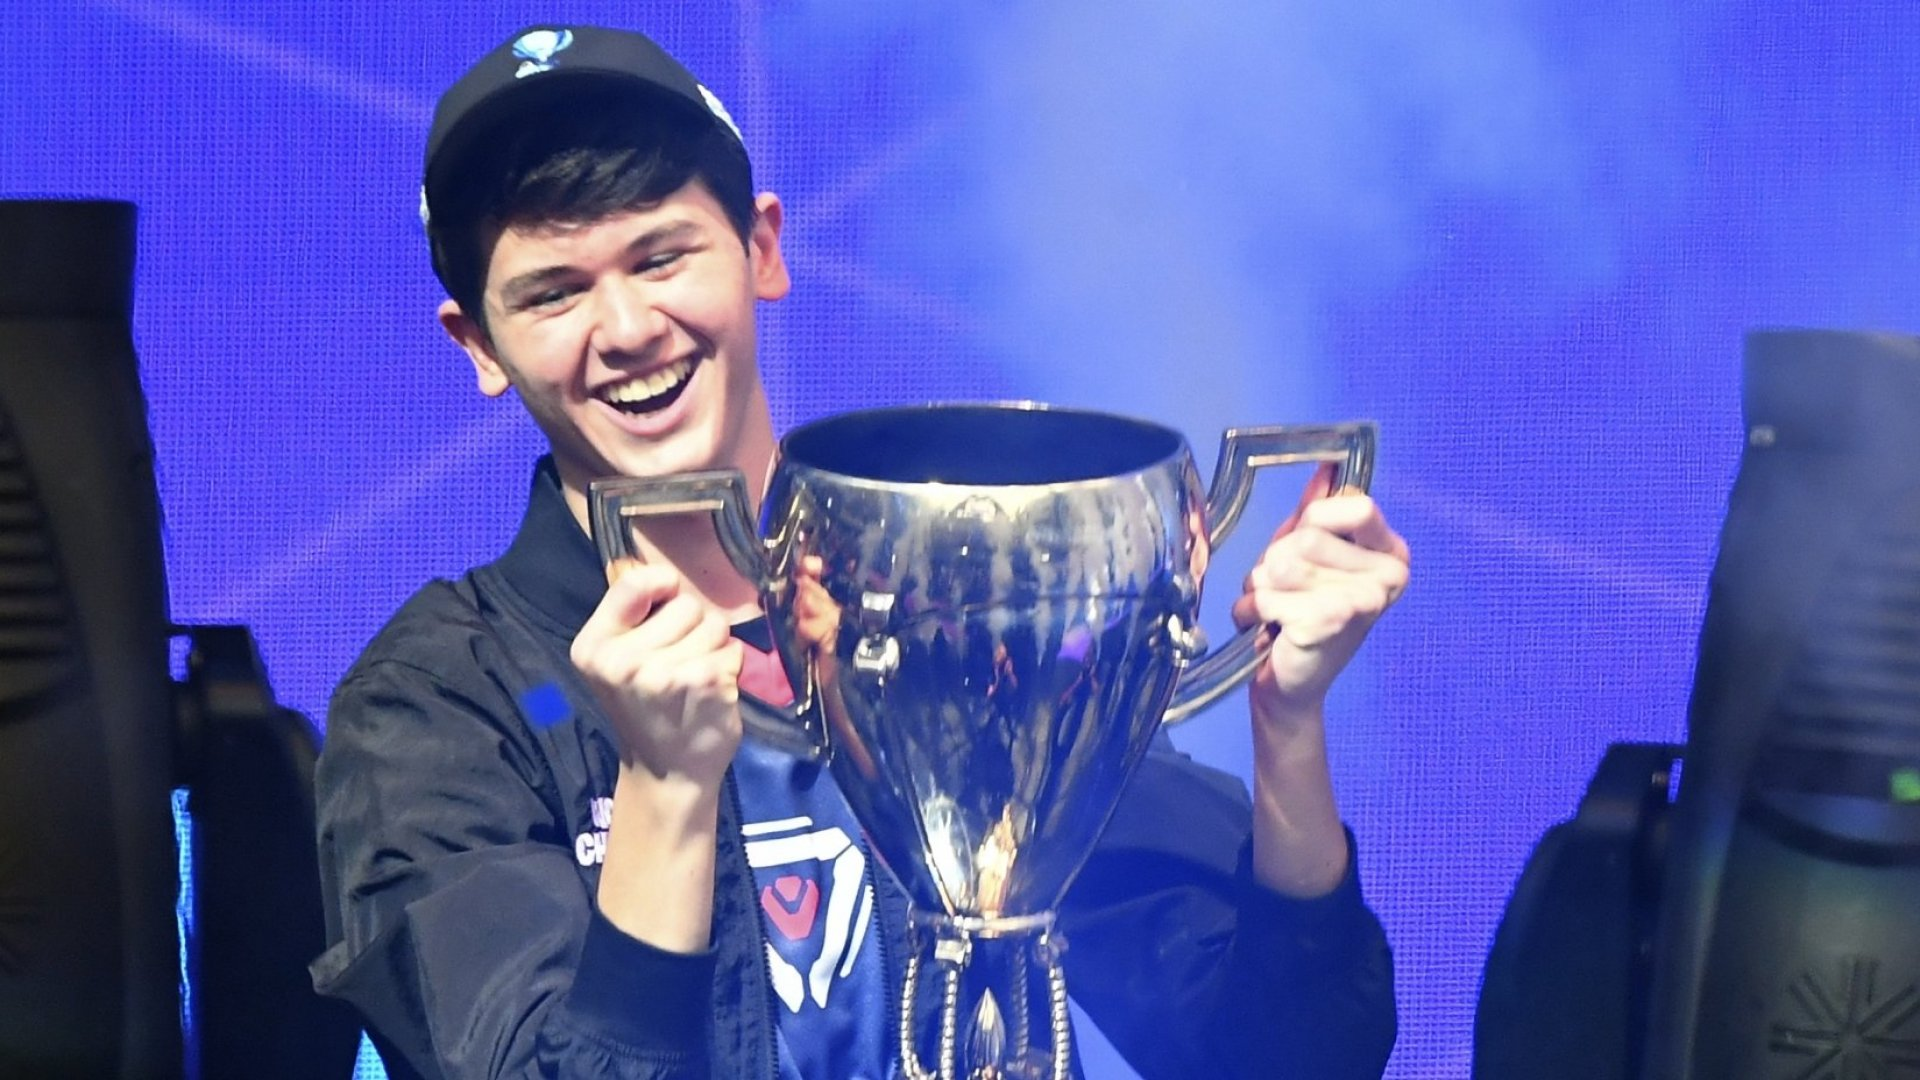 Fortnite's $3 Million World Cup Top Prize Just Went to a 16-Year-Old. Here's Why You Absolutely Should Pay Attention